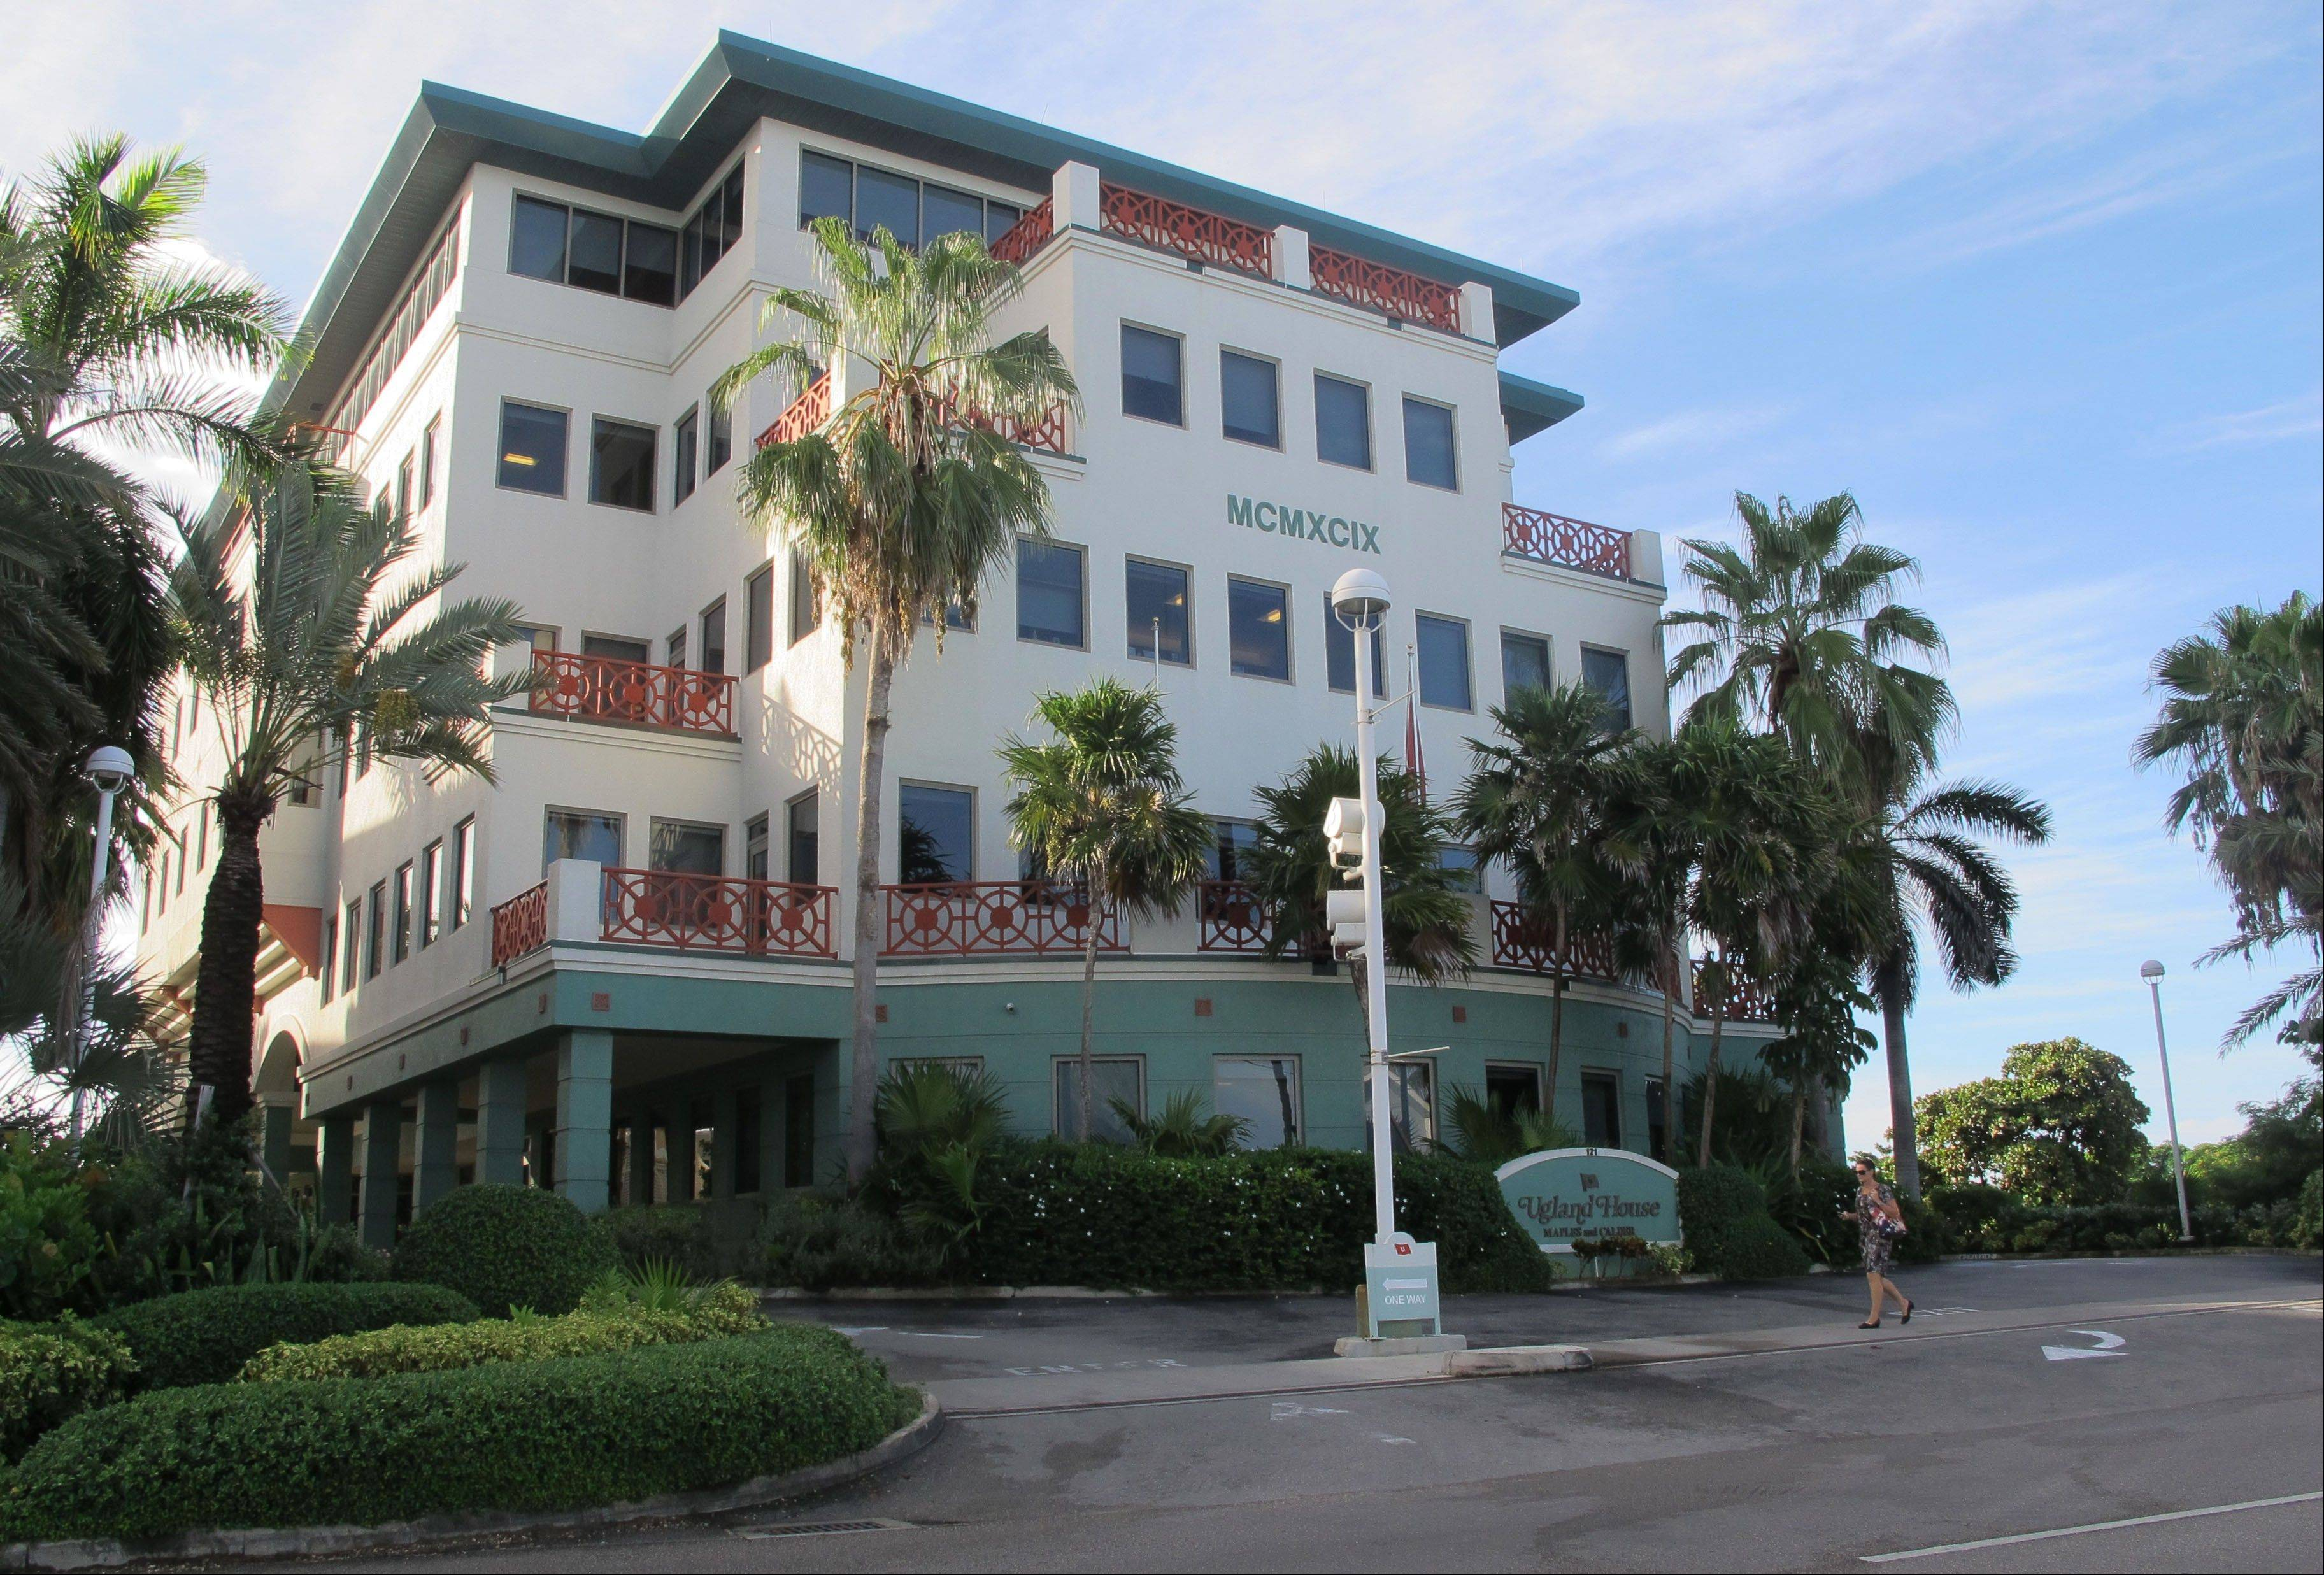 The Ugland House, the registered office for thousands of global companies, stands in George Town on Grand Cayman Island. The Cayman Islands have lost some of their allure by abruptly proposing what amounts to an income tax on expatriate workers.